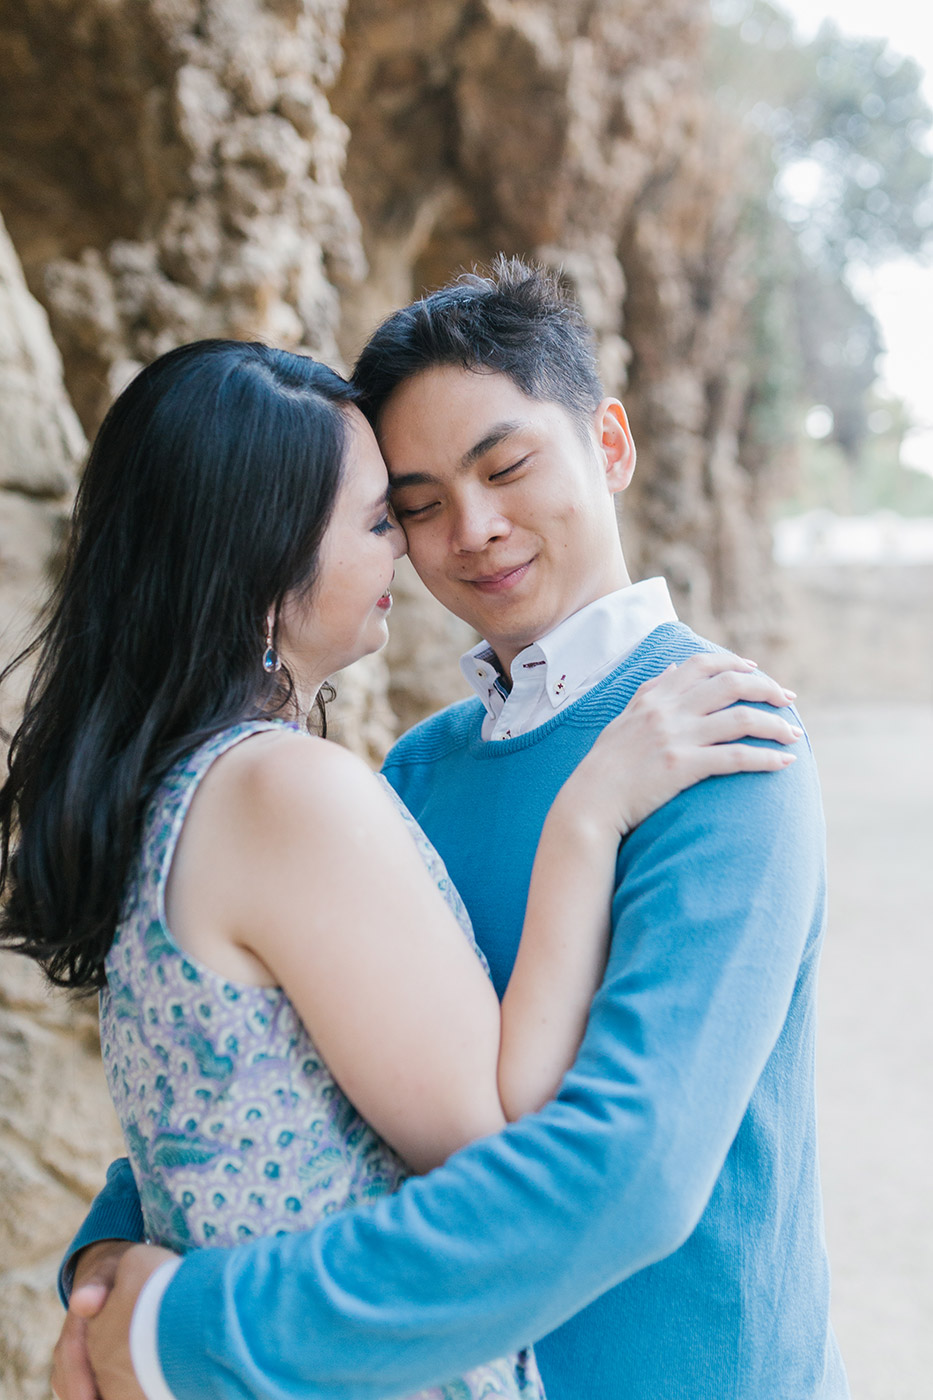 Elegant pre wedding photoshoot Barcelona |Romantic close up portrait | Fine Art Photographer | Engagement Photographer Barcelona